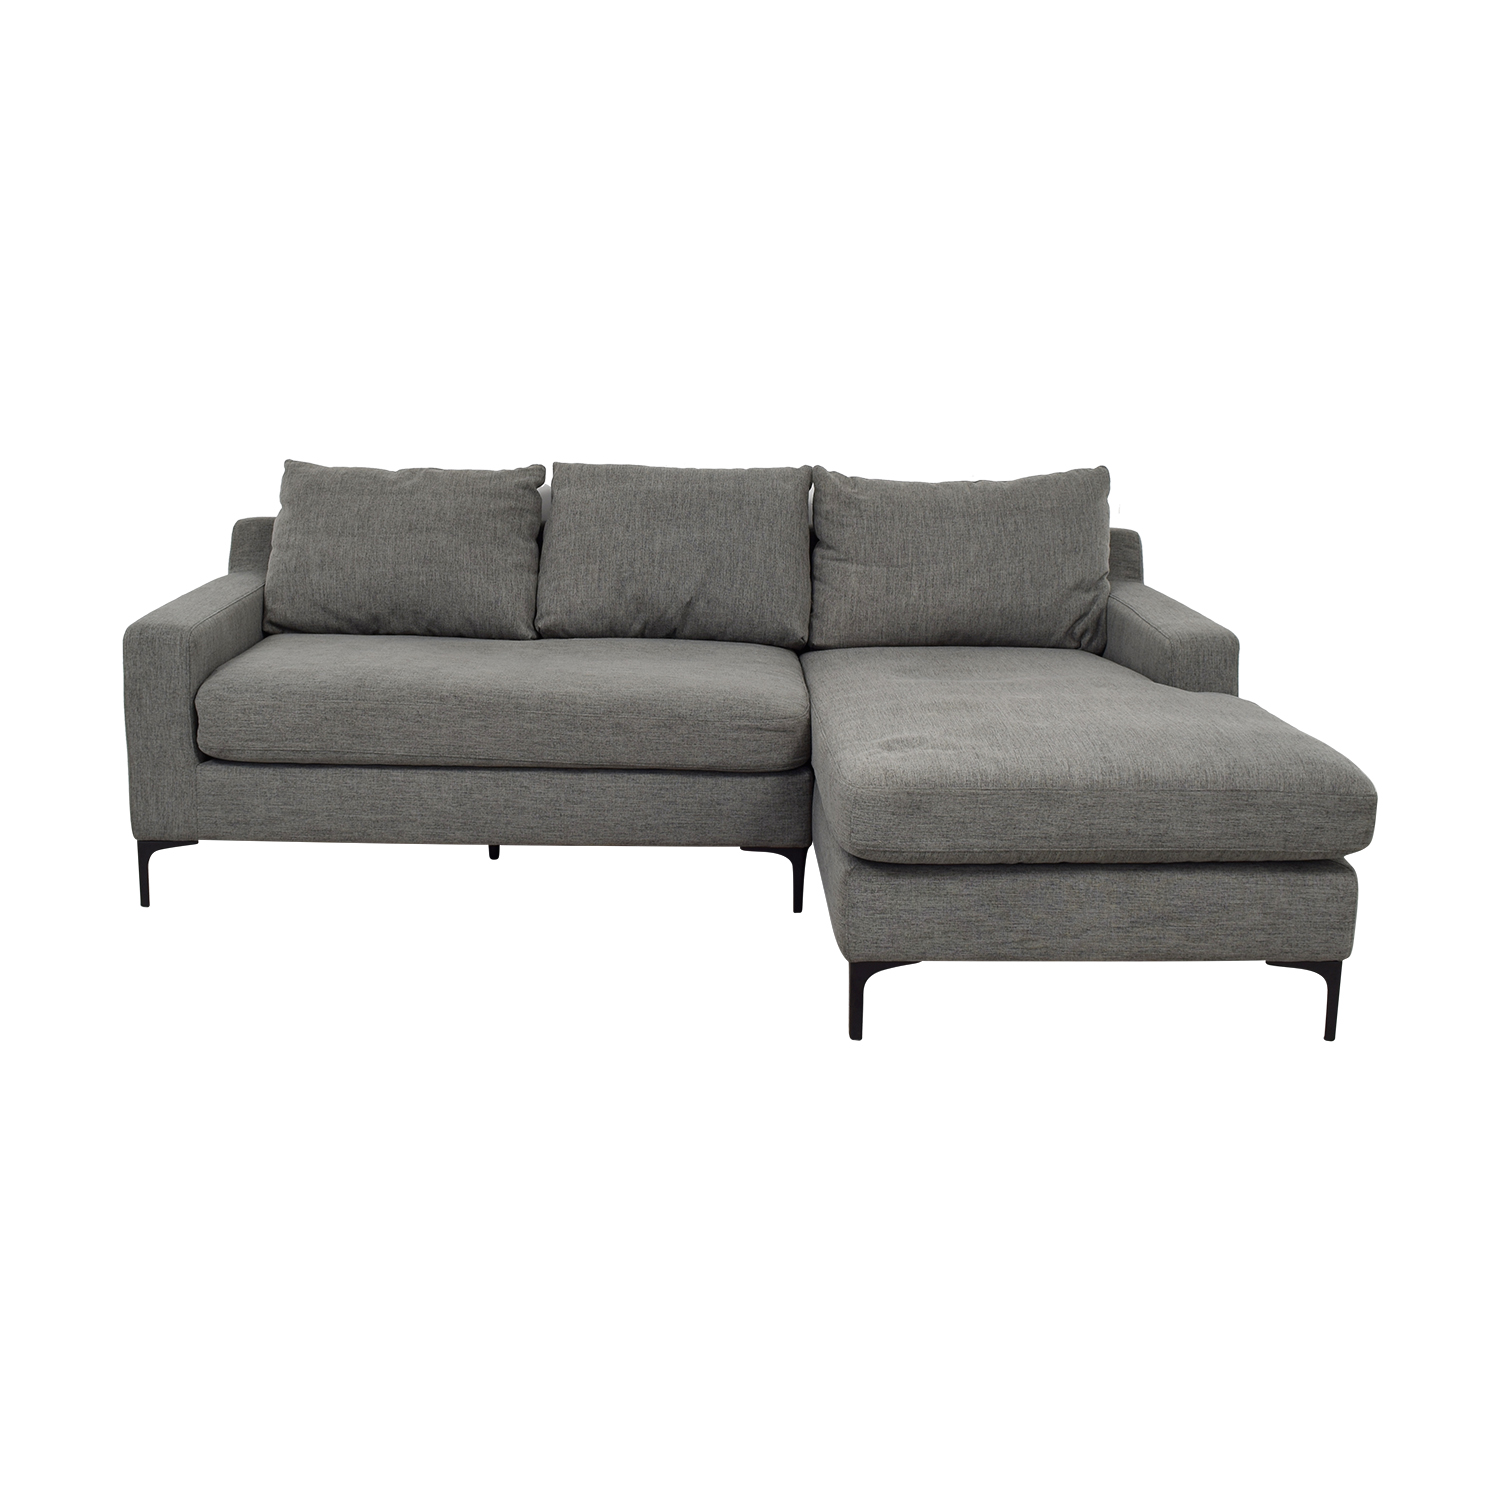 Sloan Right Chaise Sofa price